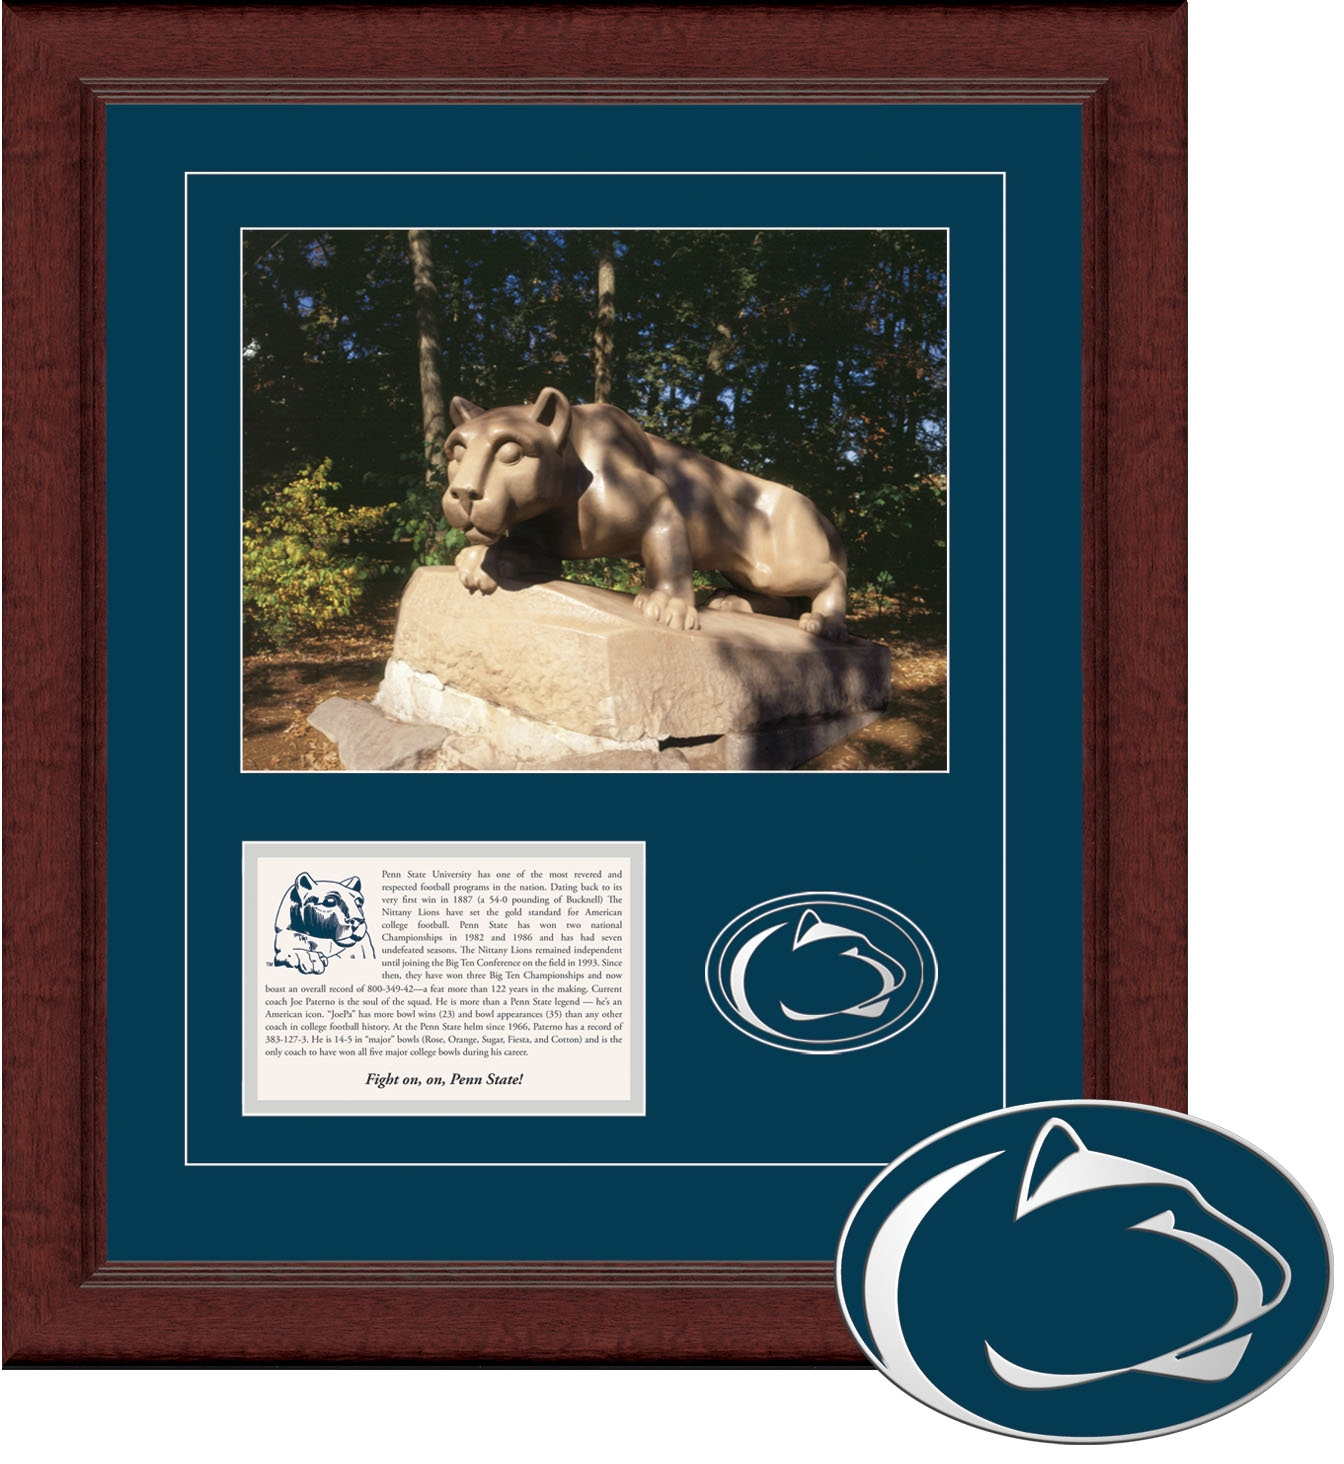 Dynasty Frame - Pennsylvania State University